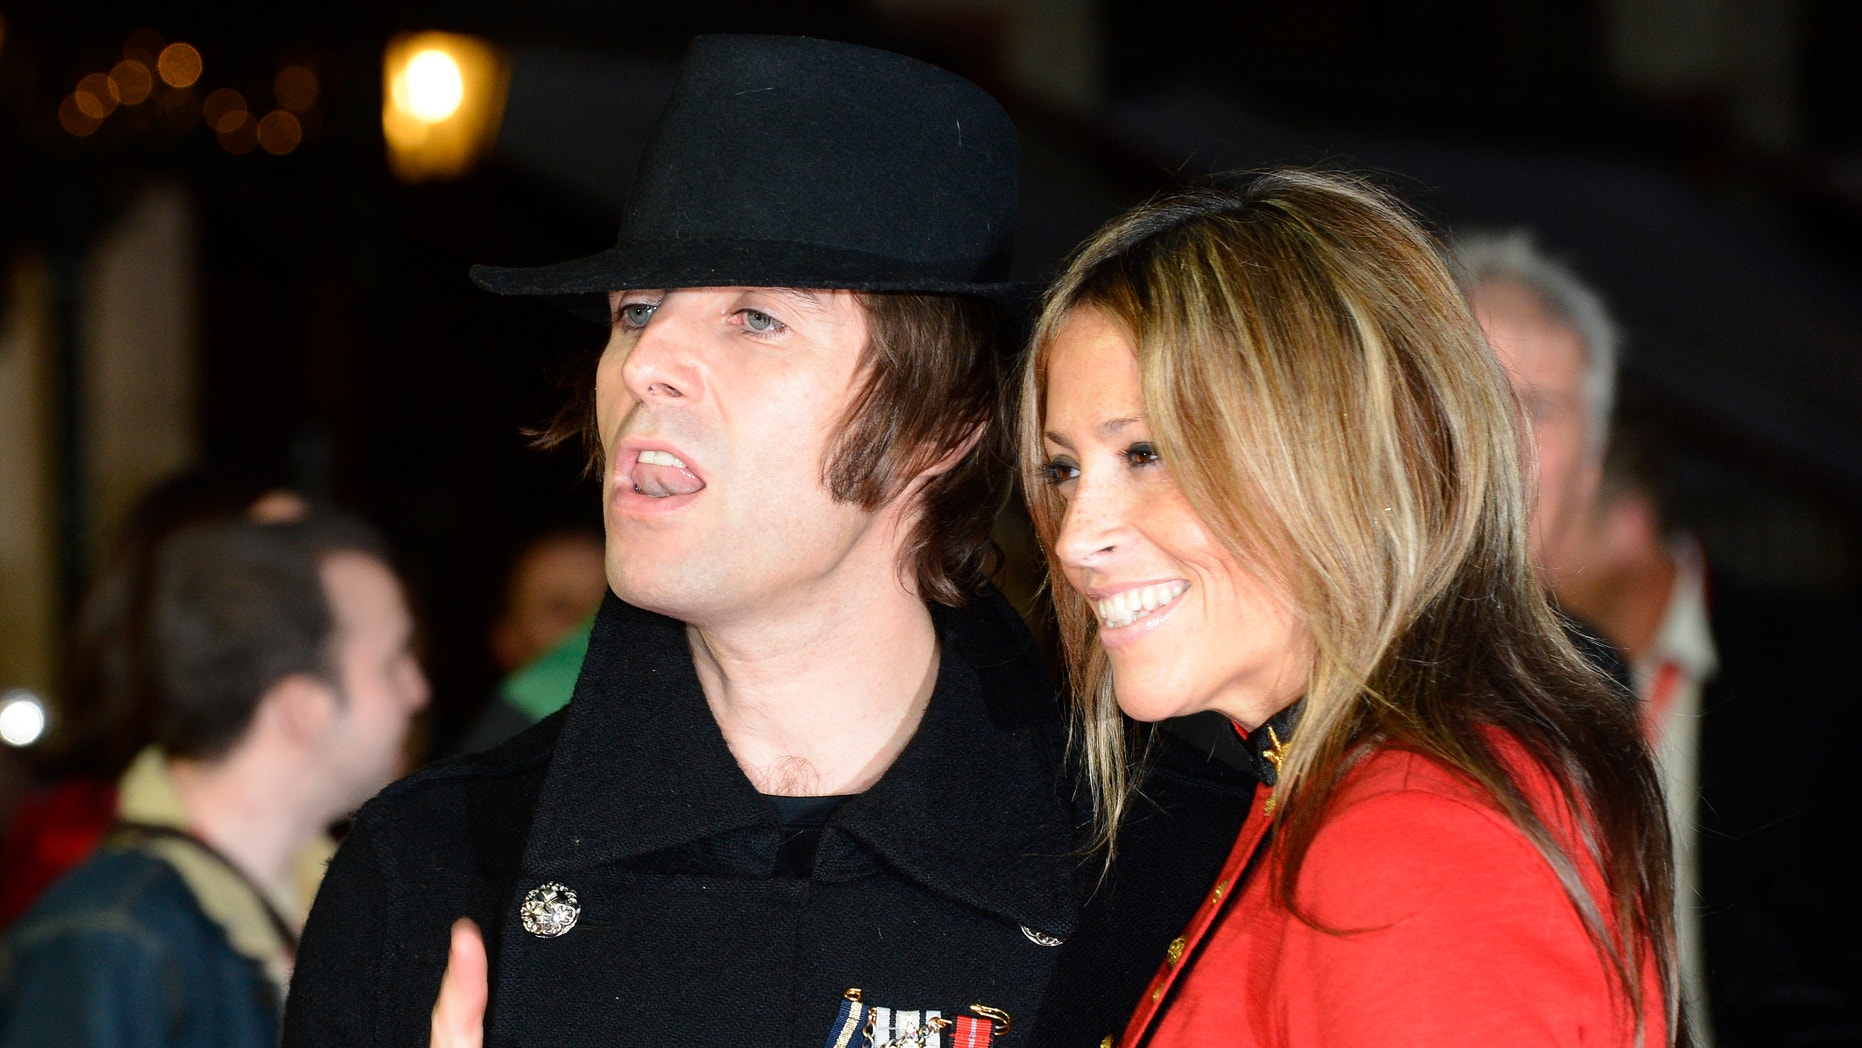 Liam Gallagher and wife Nicole Appleton in 2012.